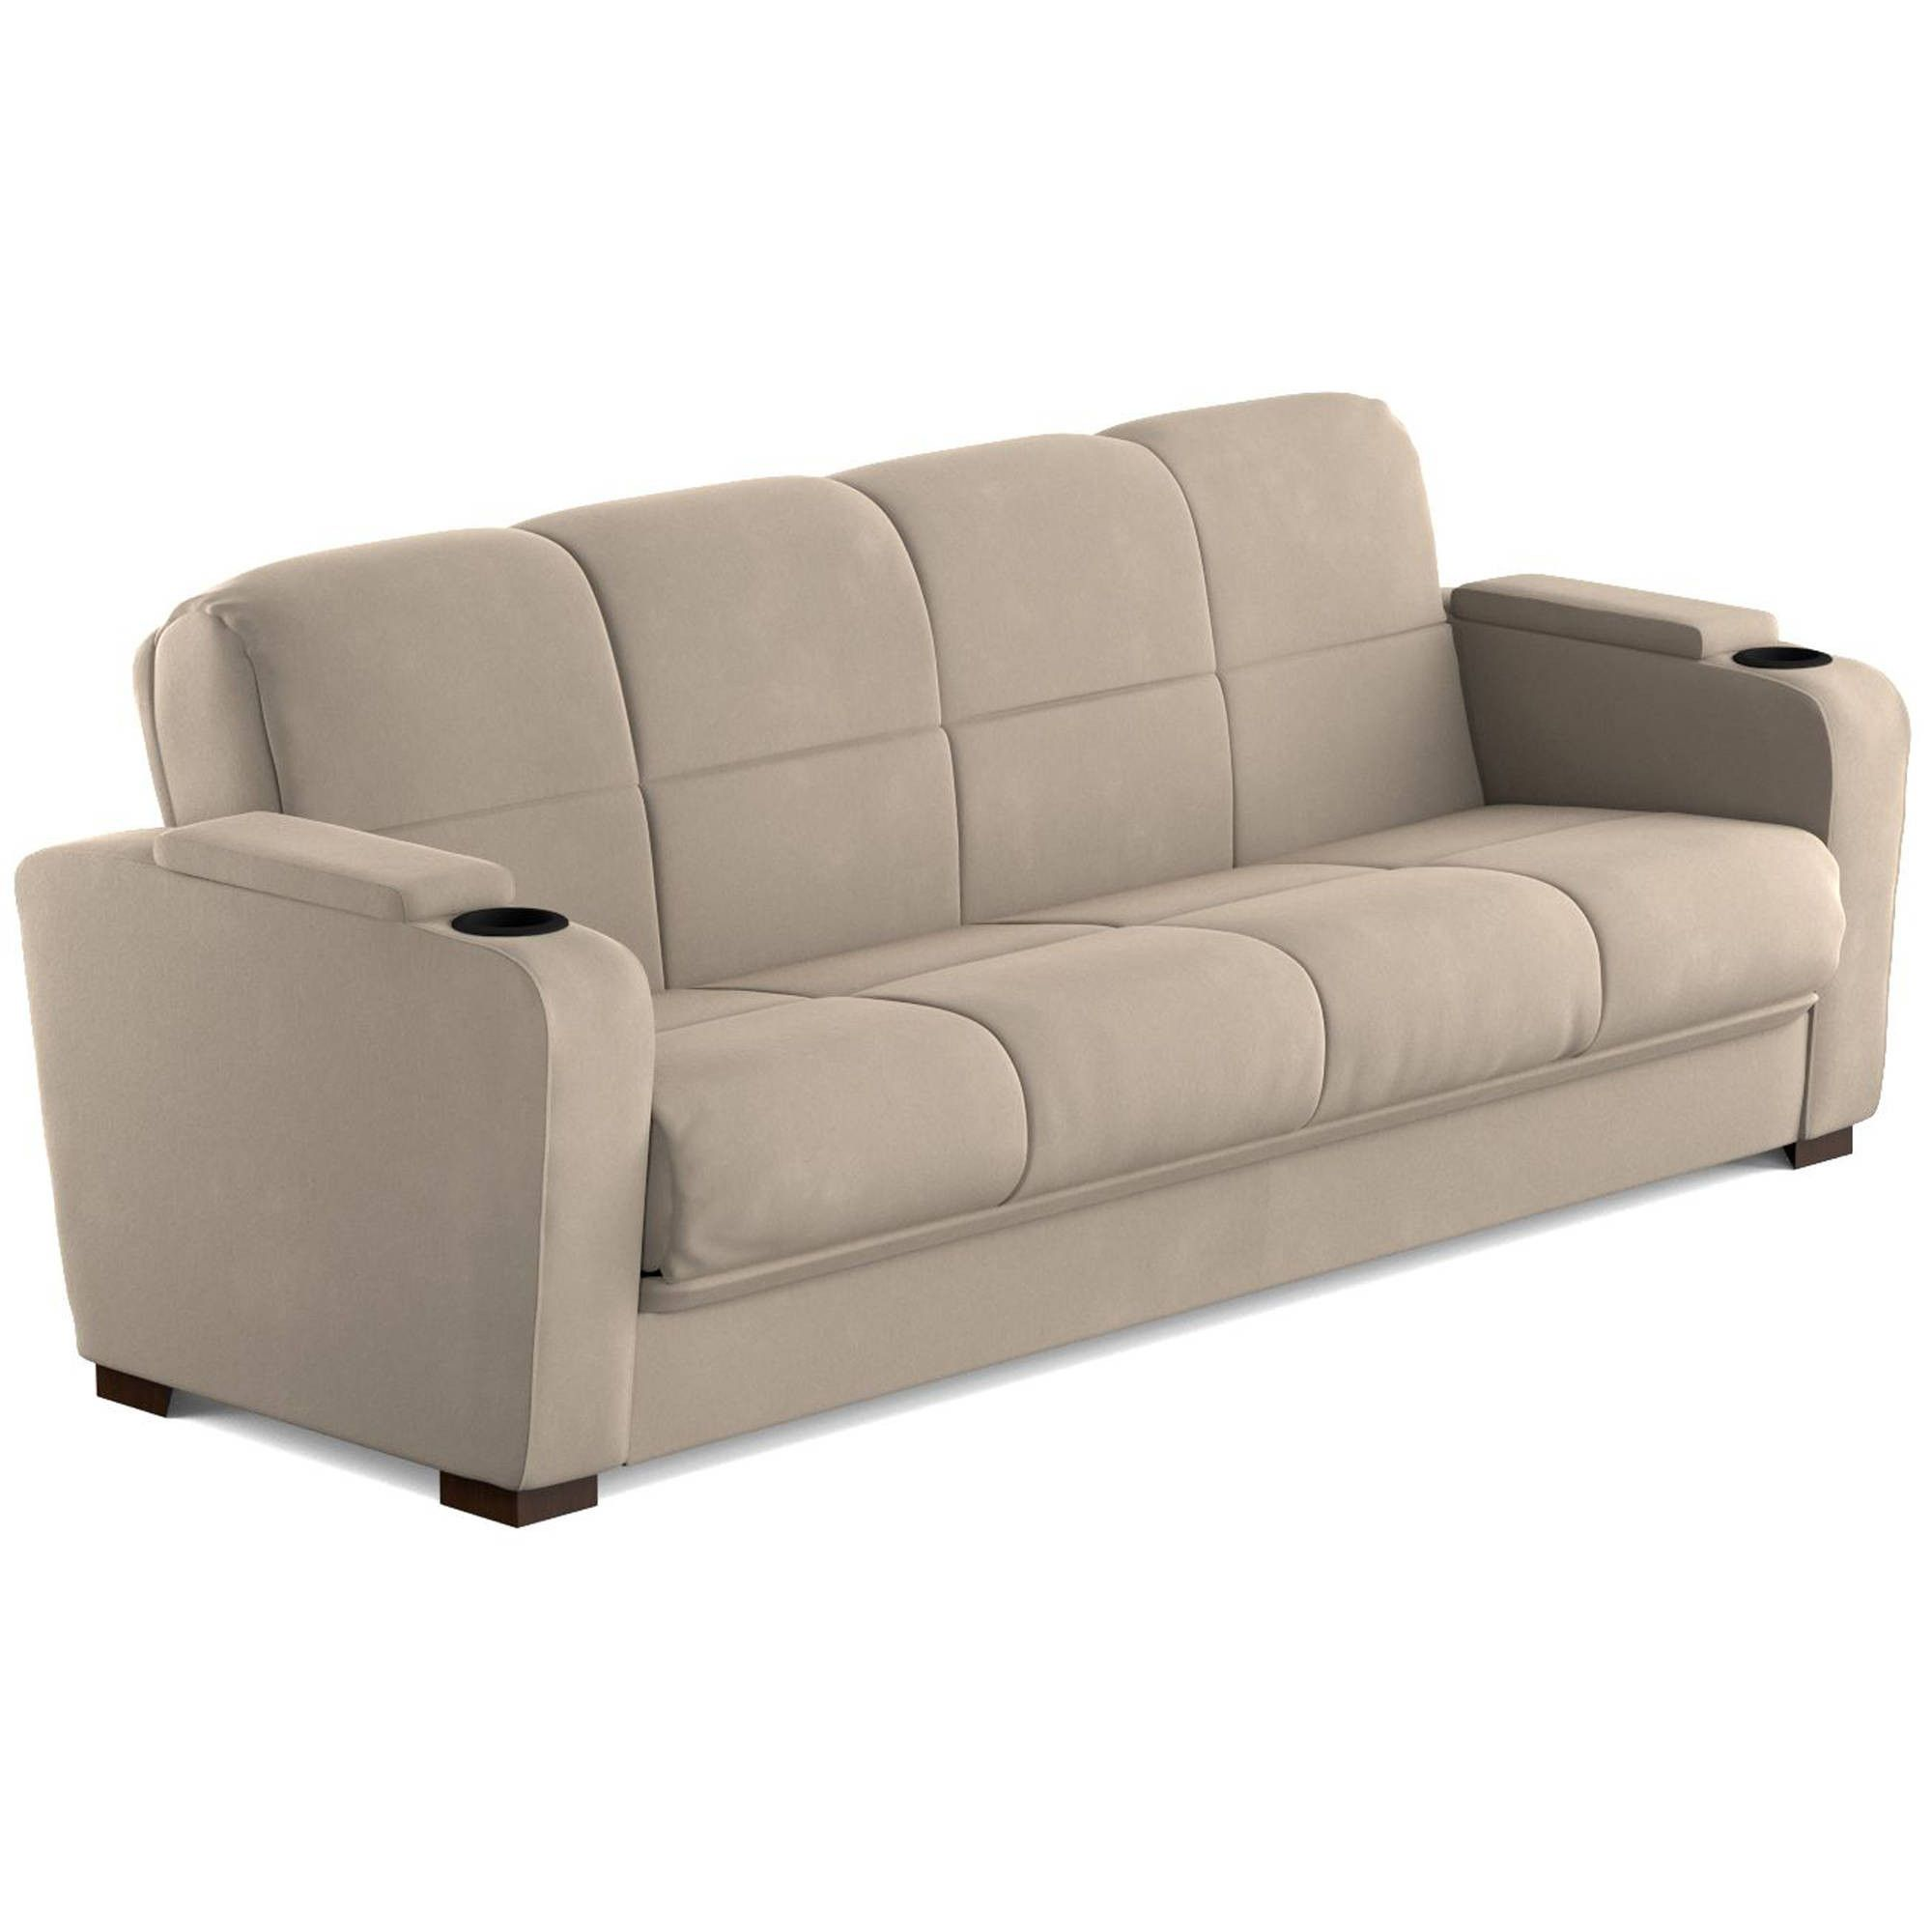 Sofa Storage Sleeper Sofa